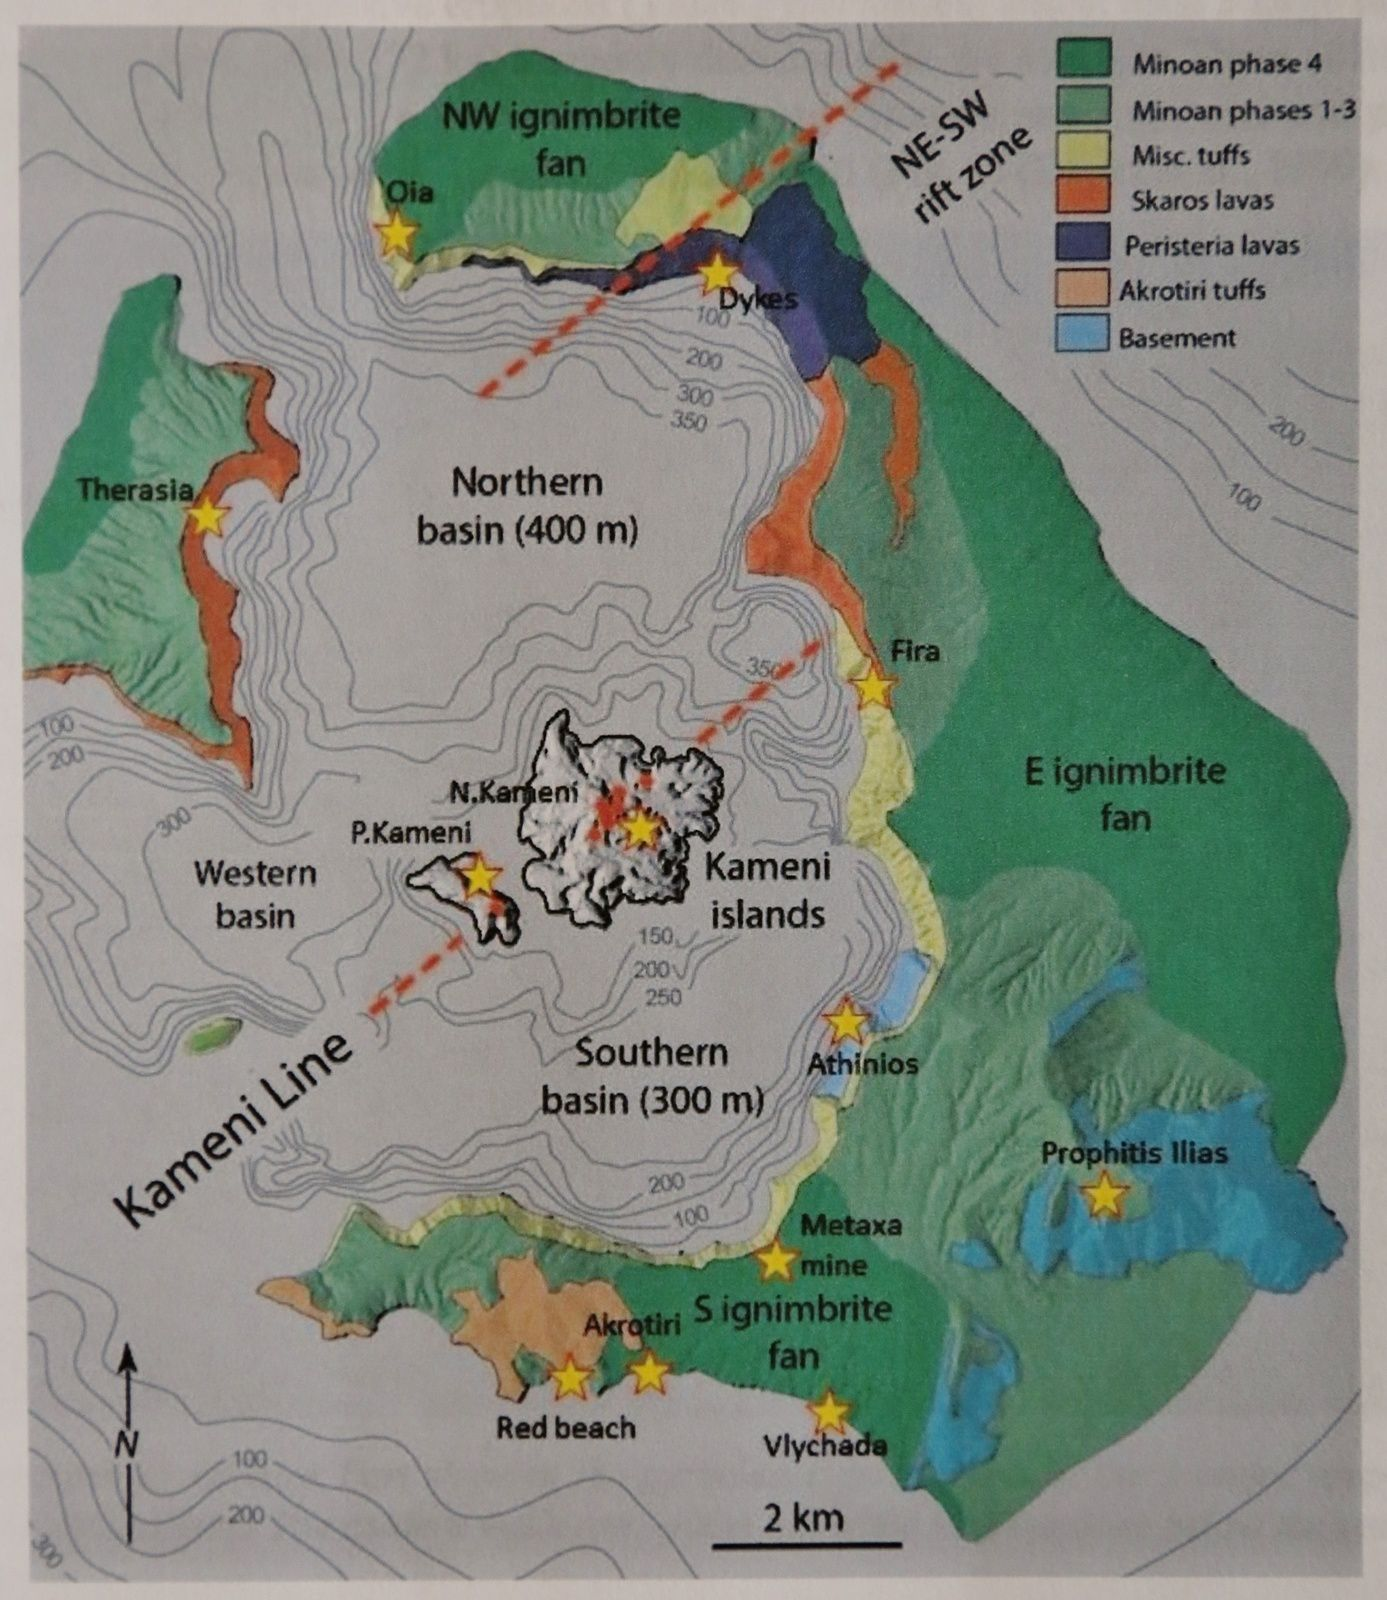 Le complexe volcanique de Santorin - Doc. The morphodynamic evolution of Santorini volcanic complex  - Doc. Nomikou, Vouvalidis, Pavlides 2019